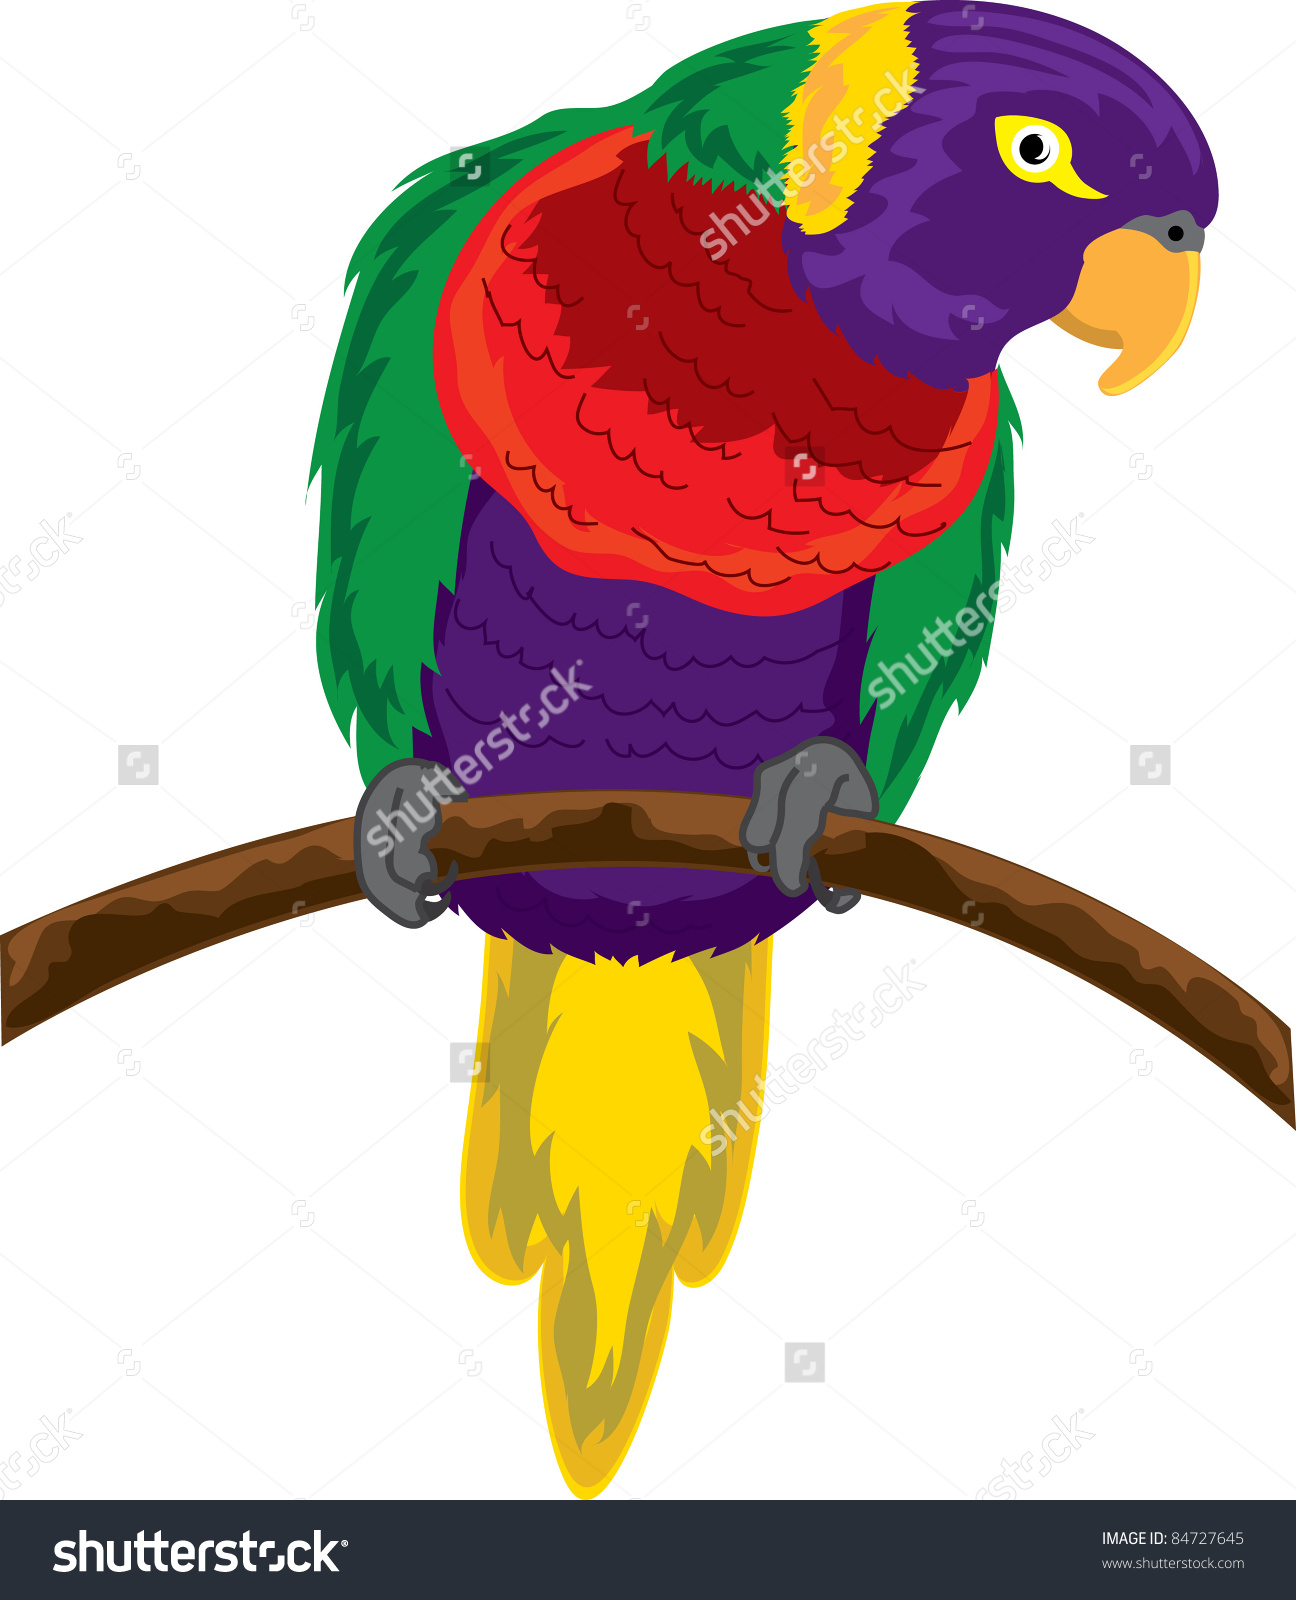 Clip Art Illustration Of Colorful Parrot Perched On A Piece Of.